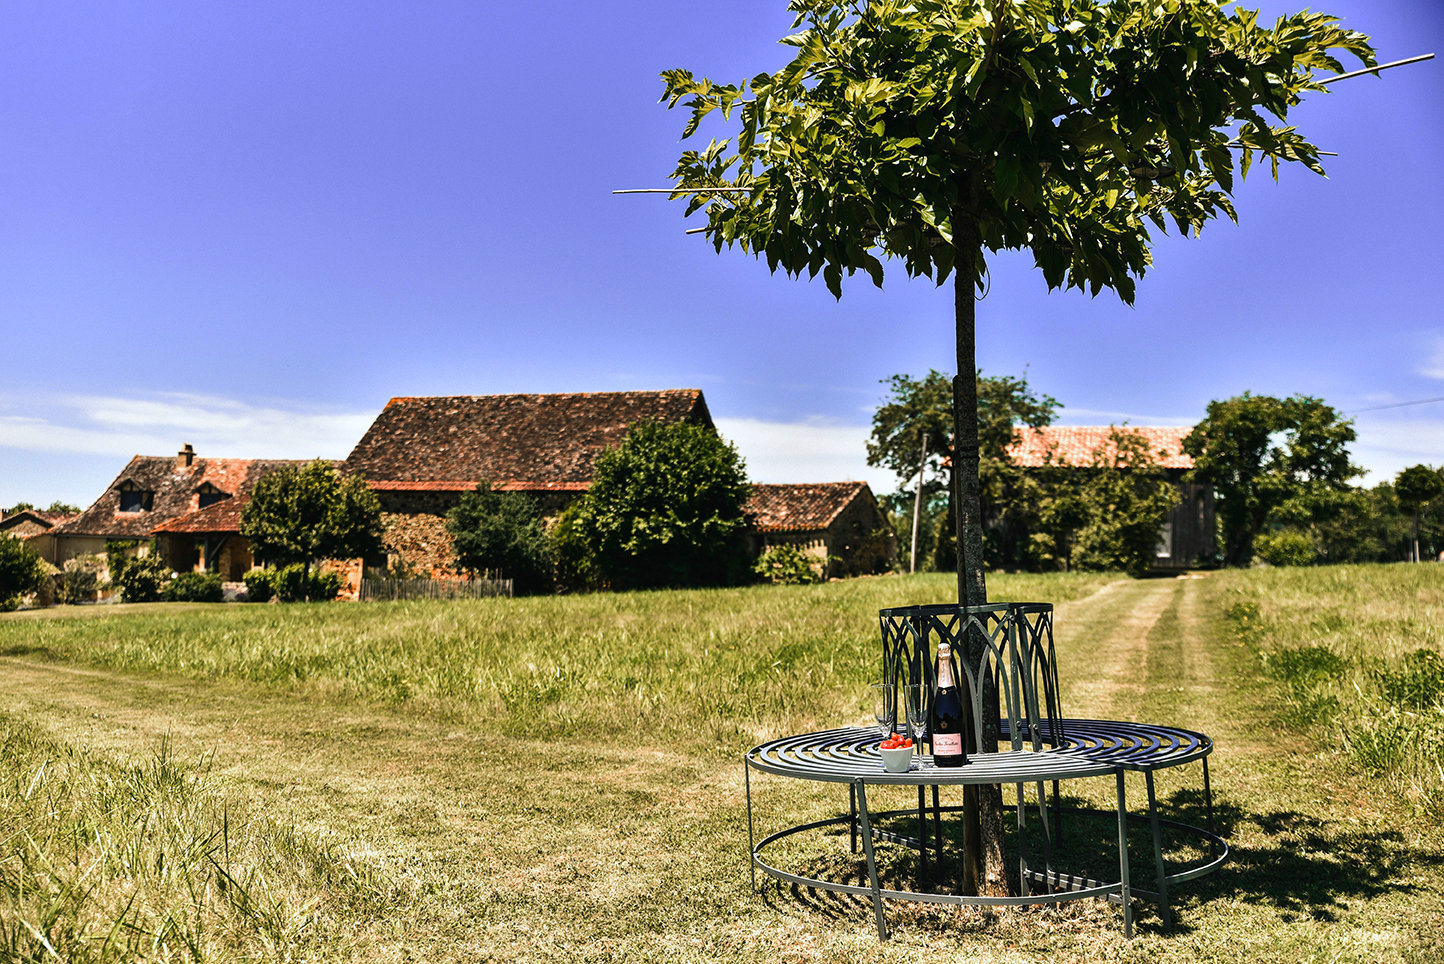 5-star holiday homes in the Dordogne countryside: the round bench and the mulberry tree with paths mown in a meadow with a barn and other buildings in the background